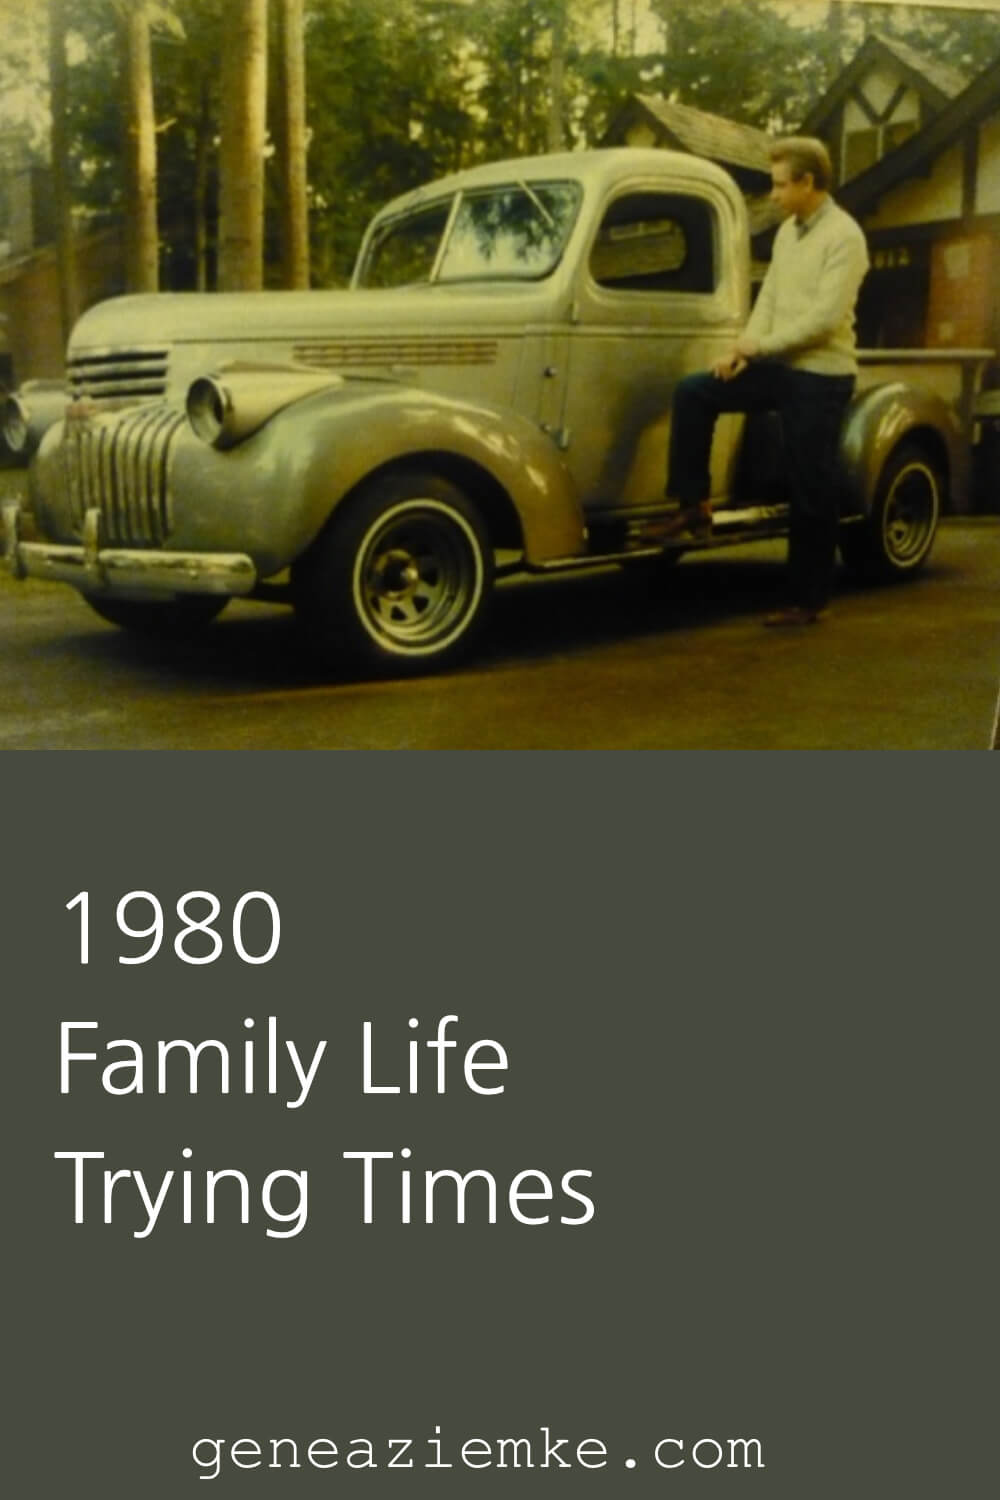 The Ziemke Story - 1980 - Family Life and Trying Times